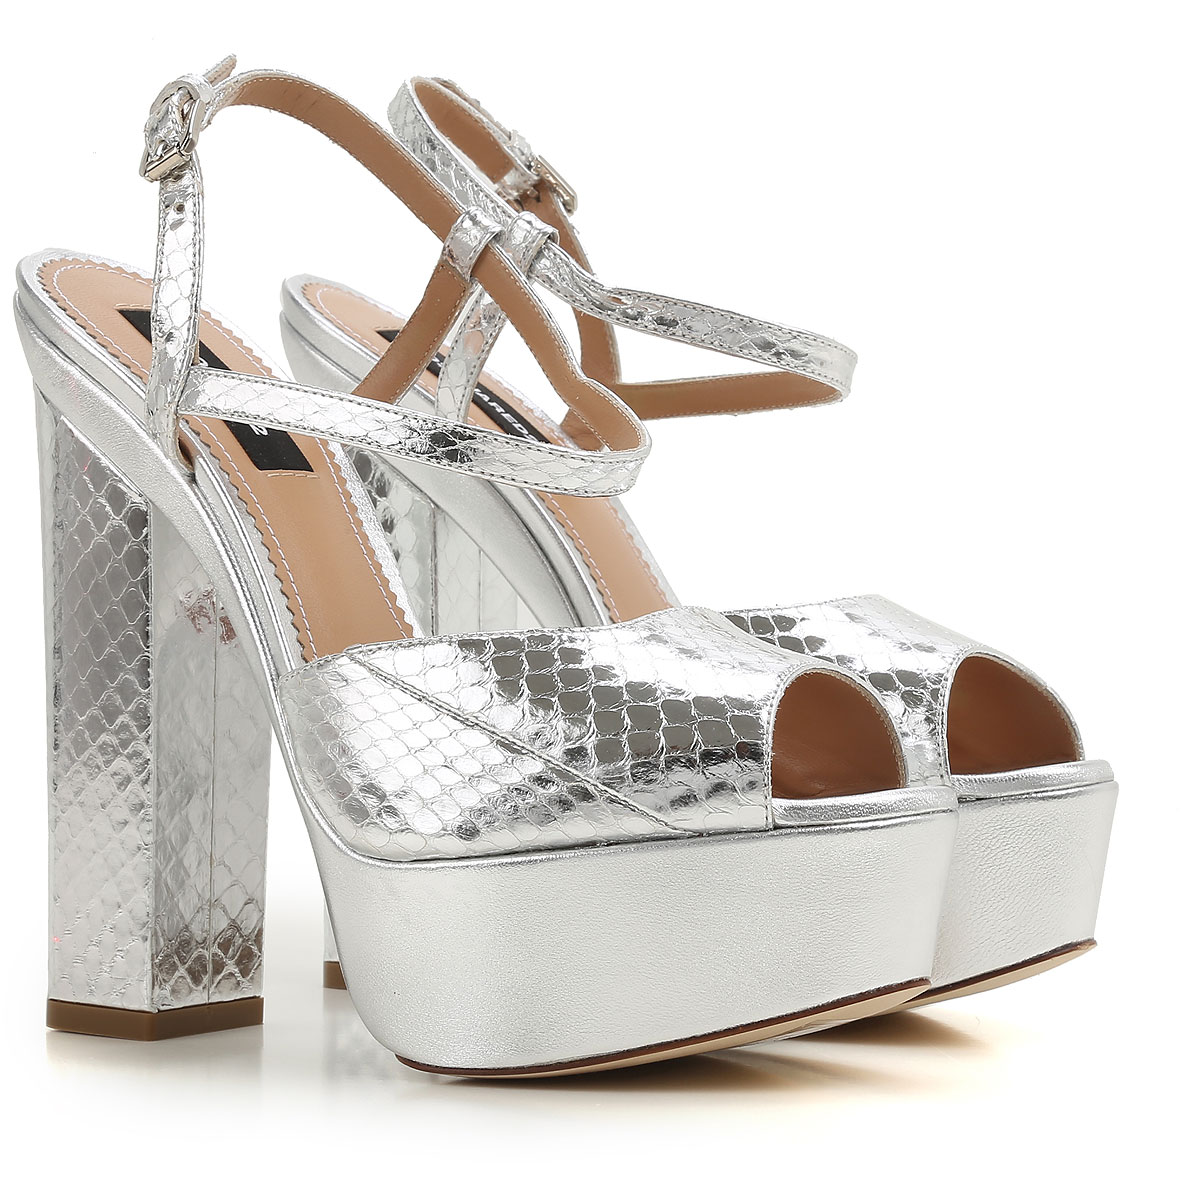 Dsquared2 Sandals for Women in Outlet Silver USA - GOOFASH